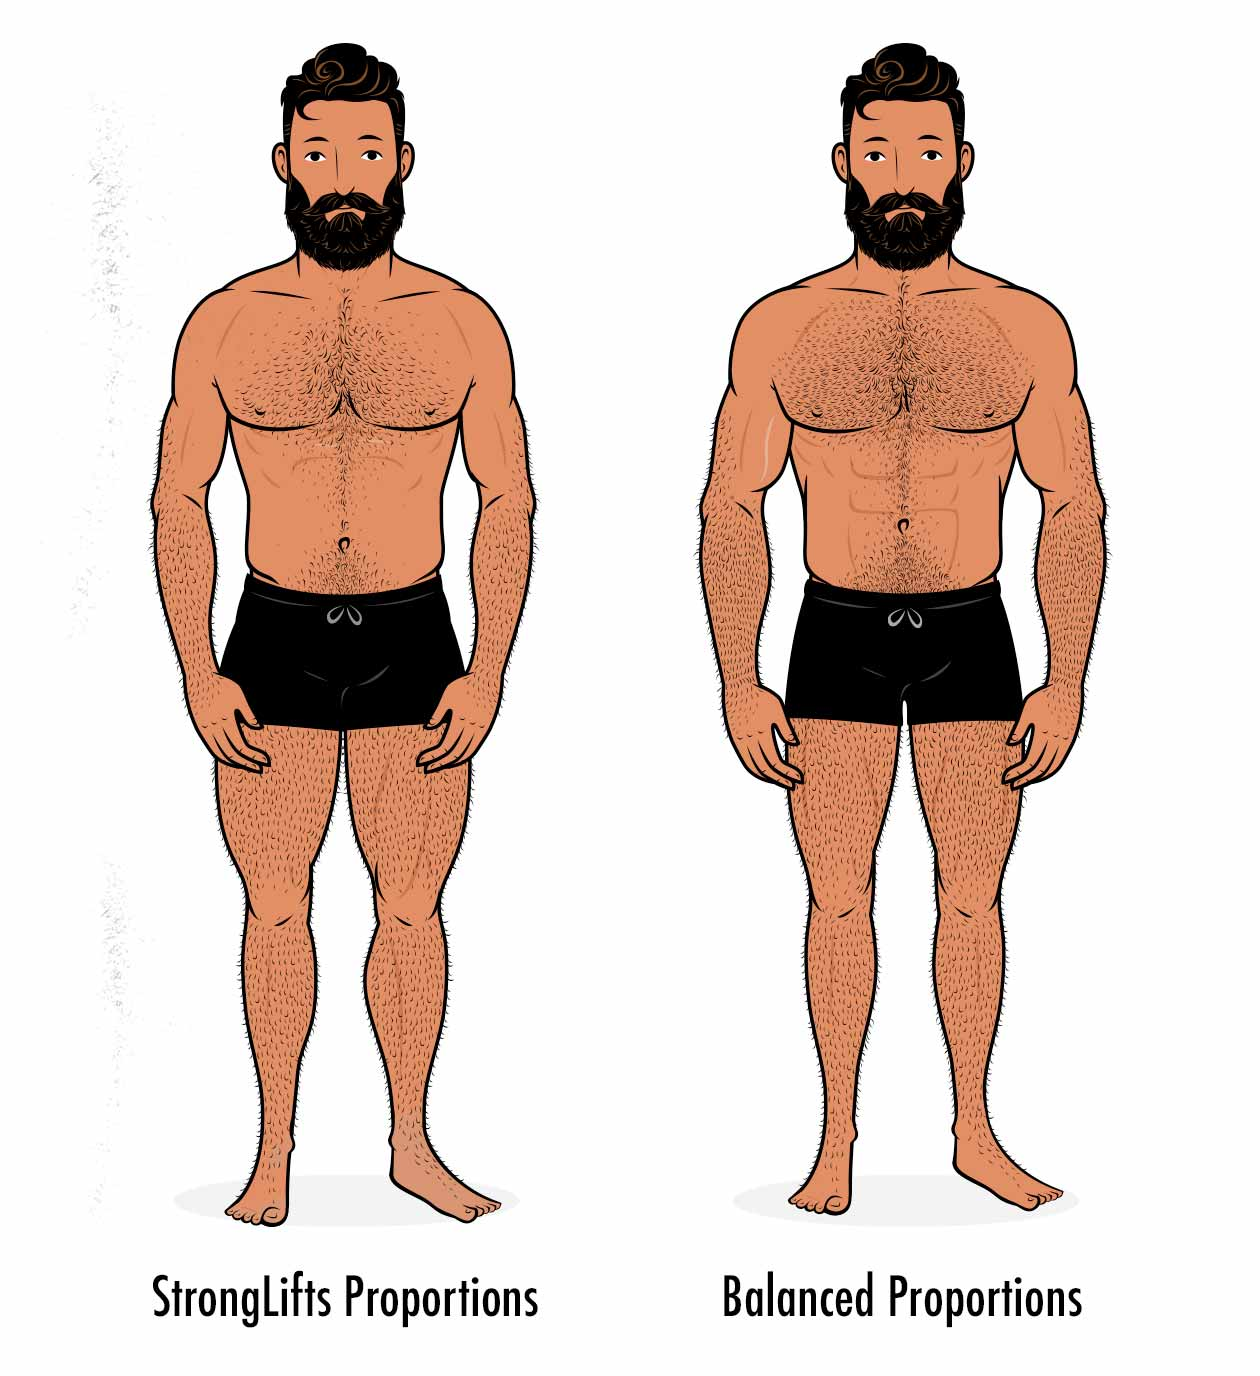 Illustration showing the results from the stronglifts 5x5 program, with the man building bigger legs and a smaller upper body.